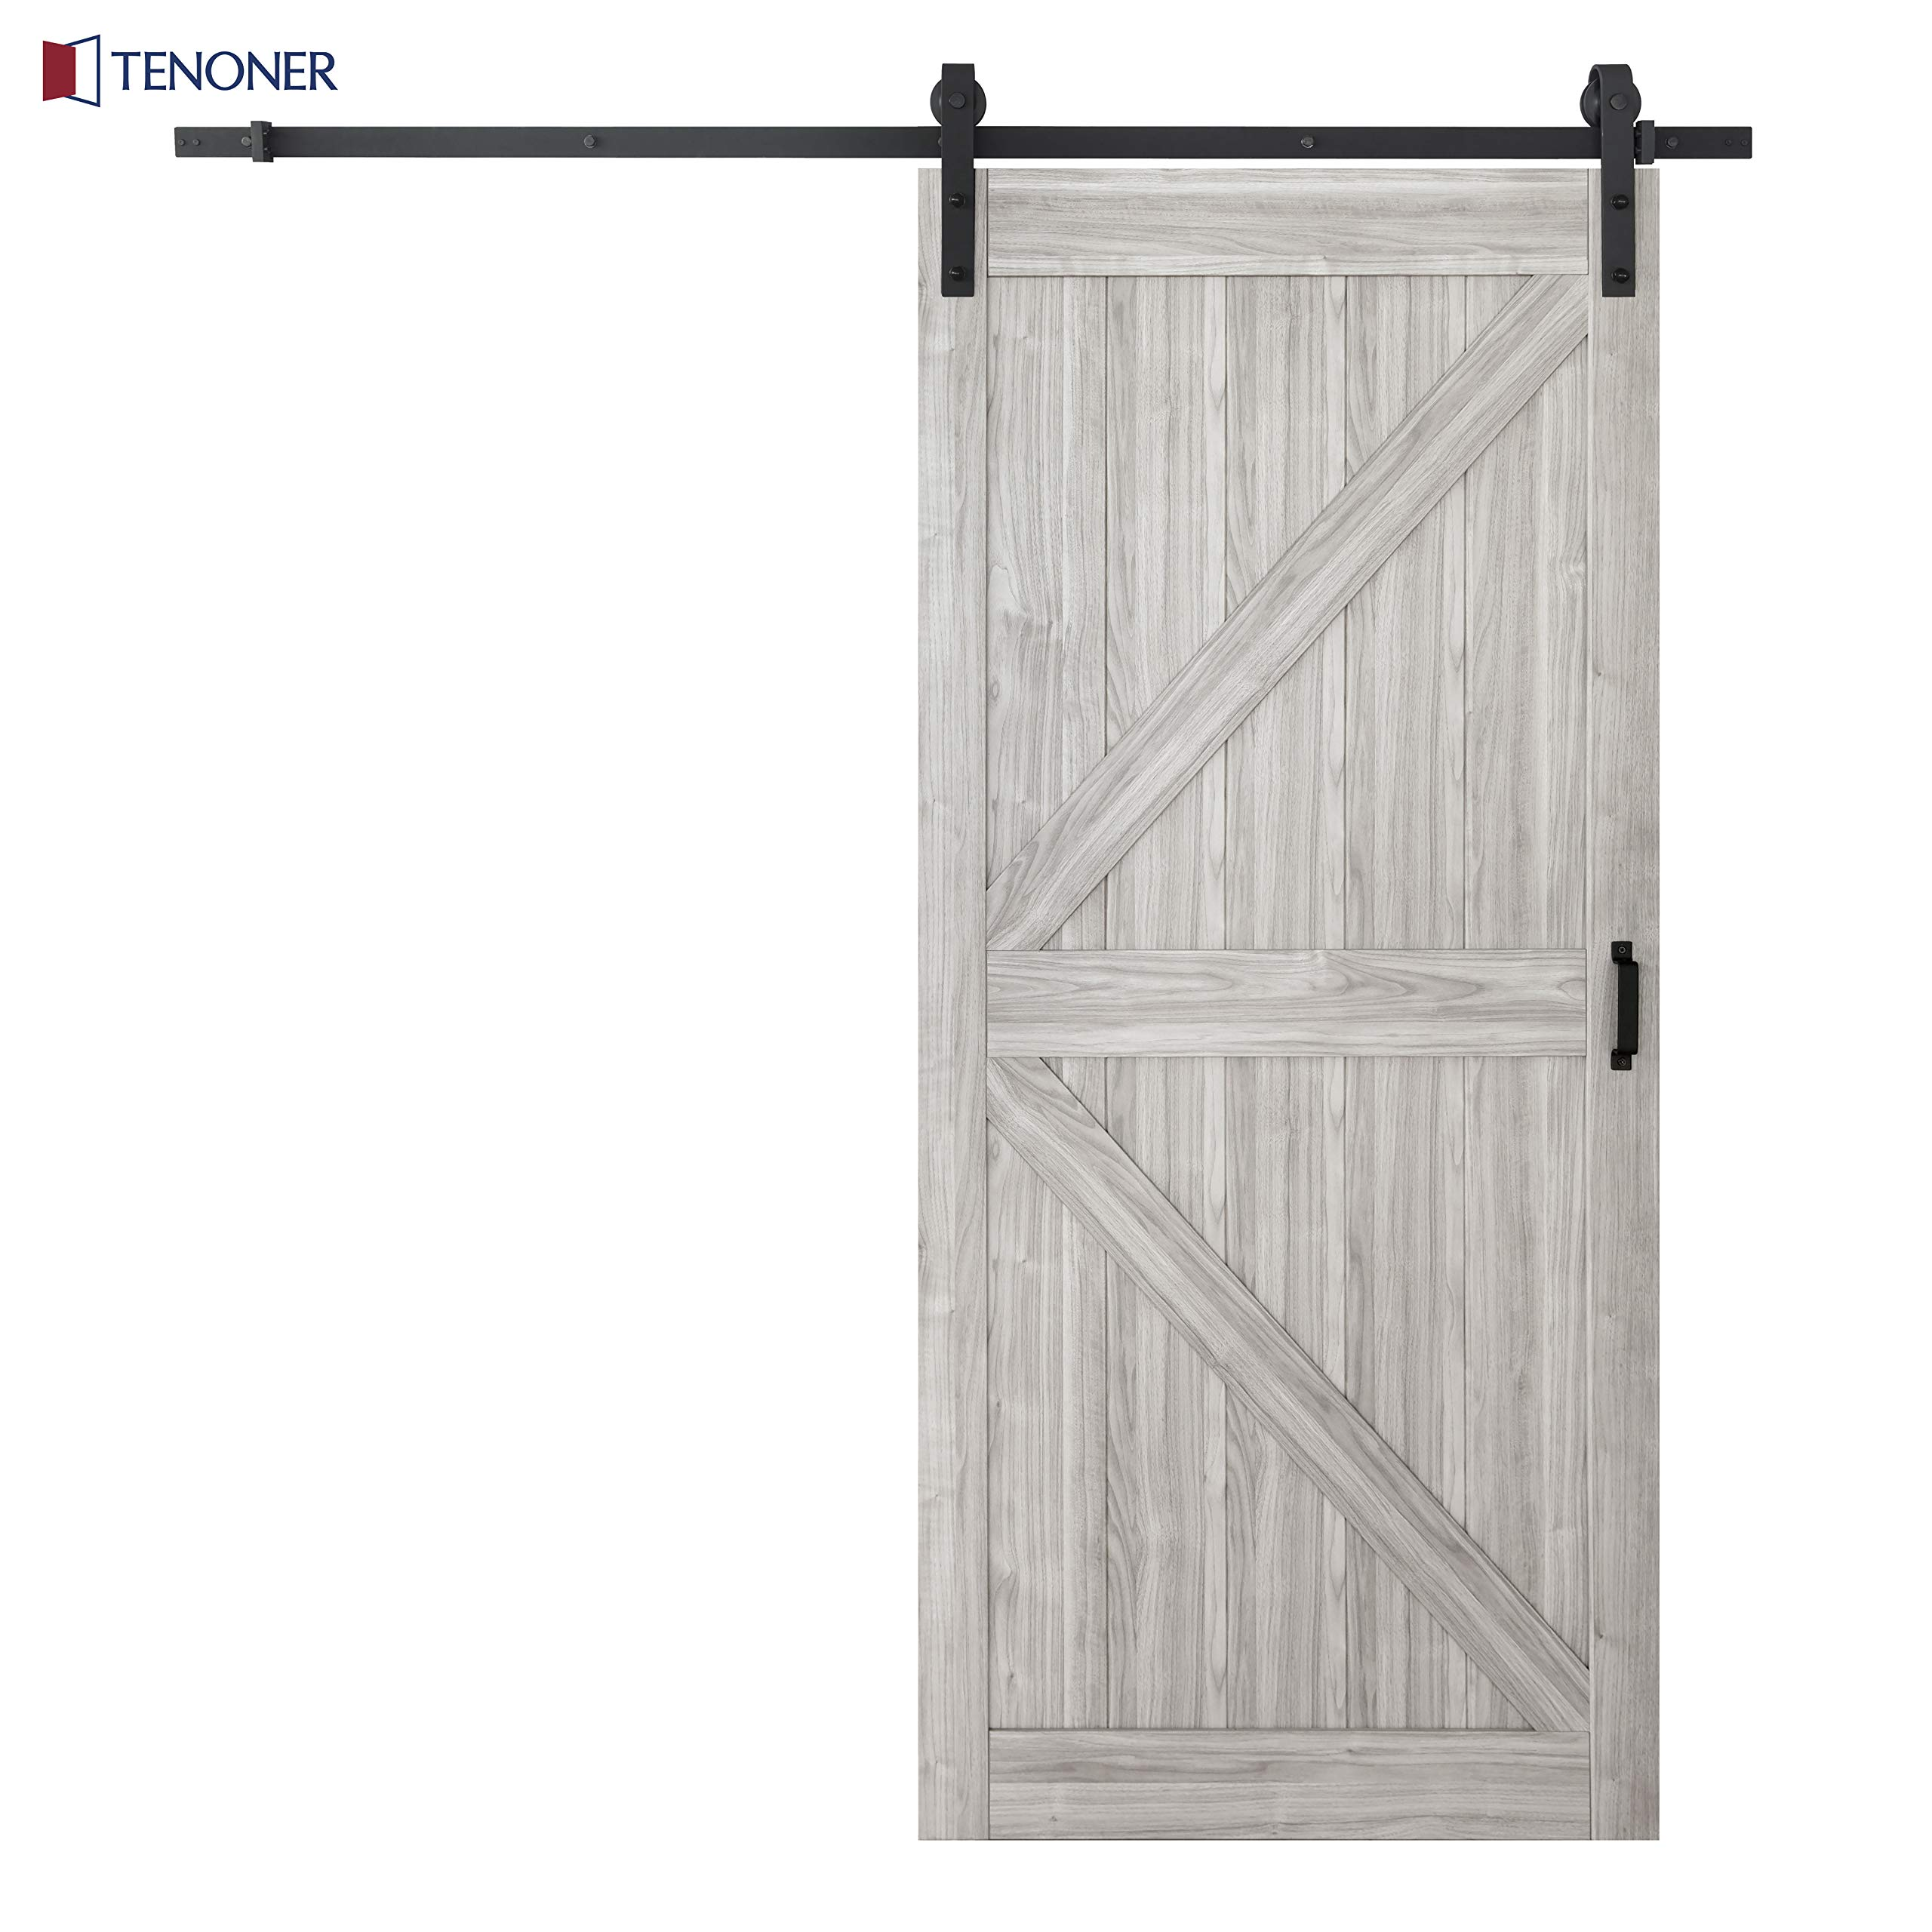 TENONER 36in x 84in Grey K-Frame Sliding Barn Door, 6.6ft Barn Door Hardware Kit & Handle Included